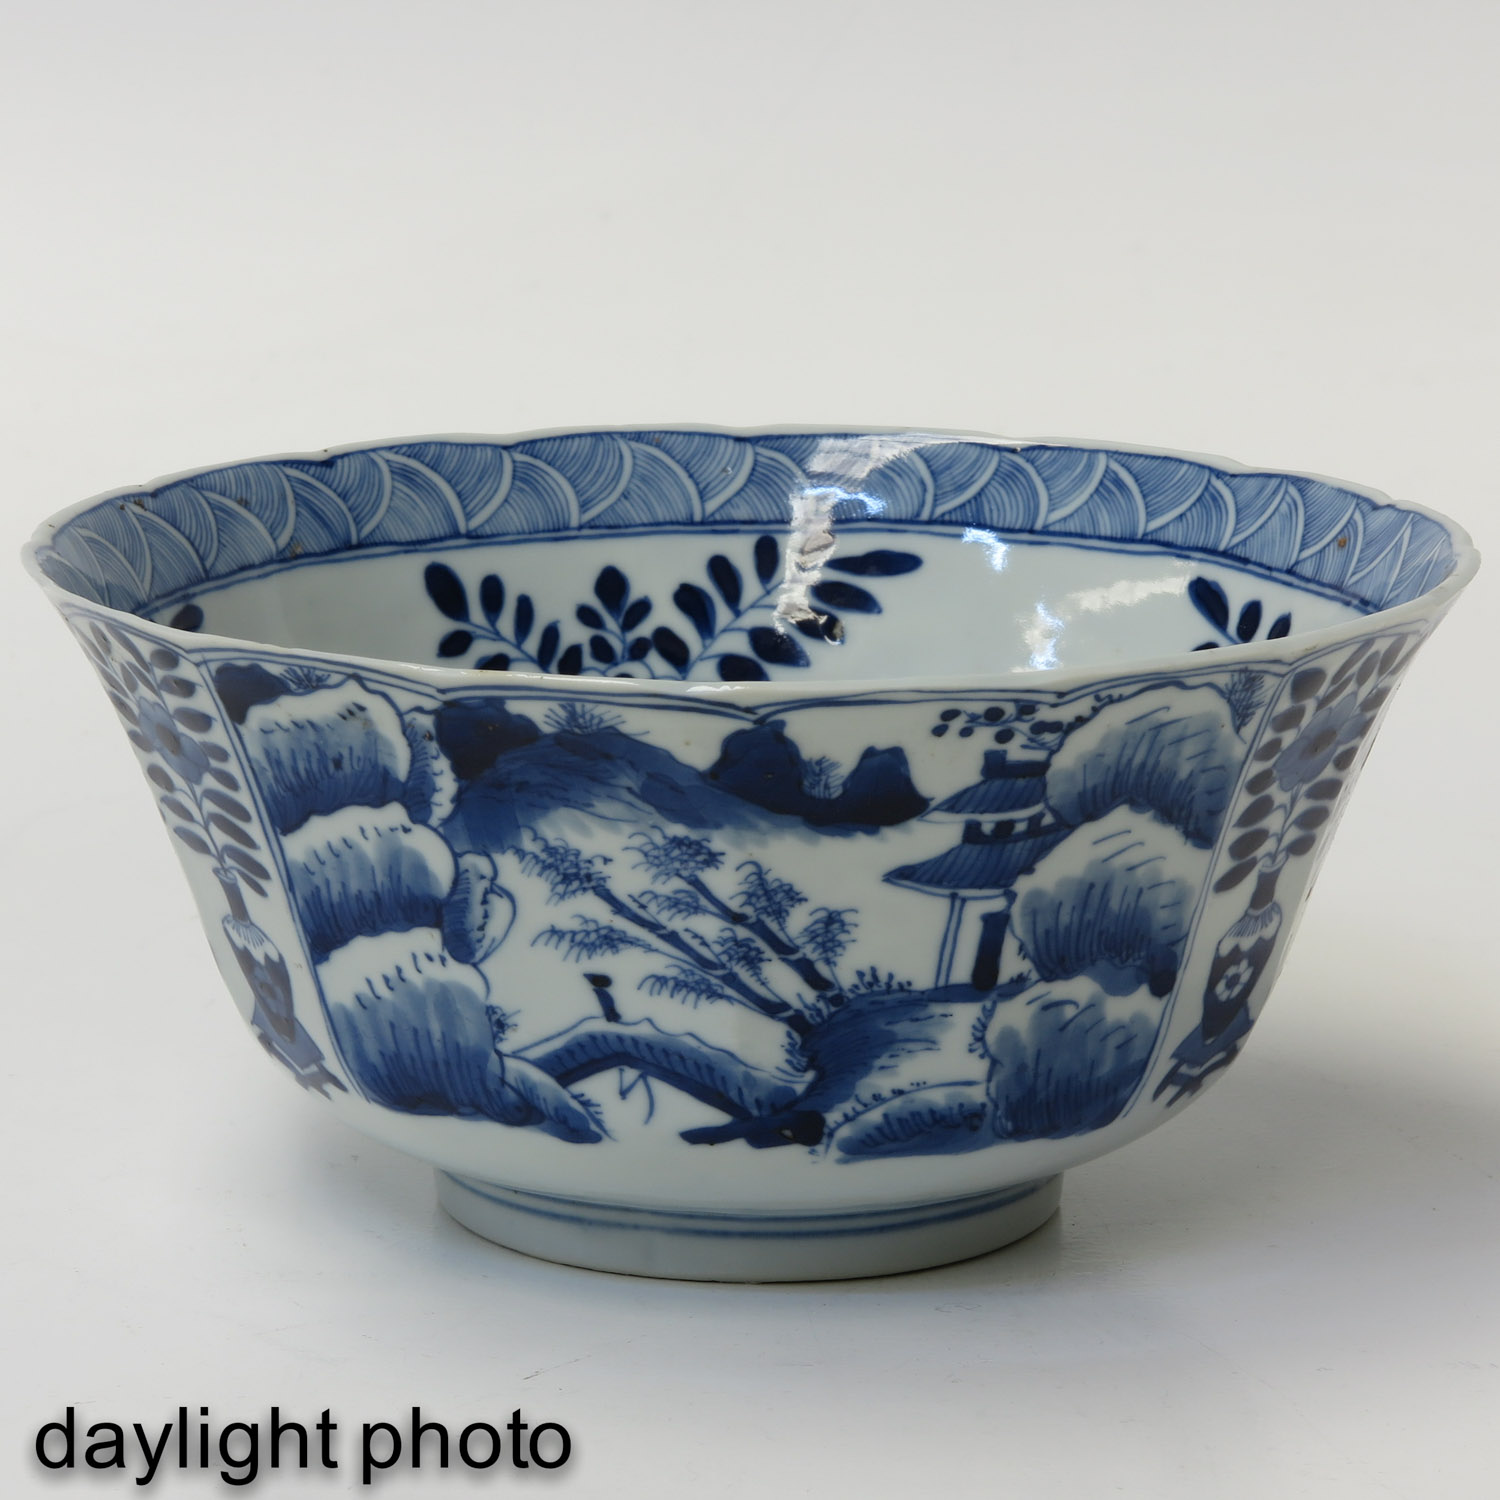 A Pair of Blue and White Bowls - Image 7 of 10